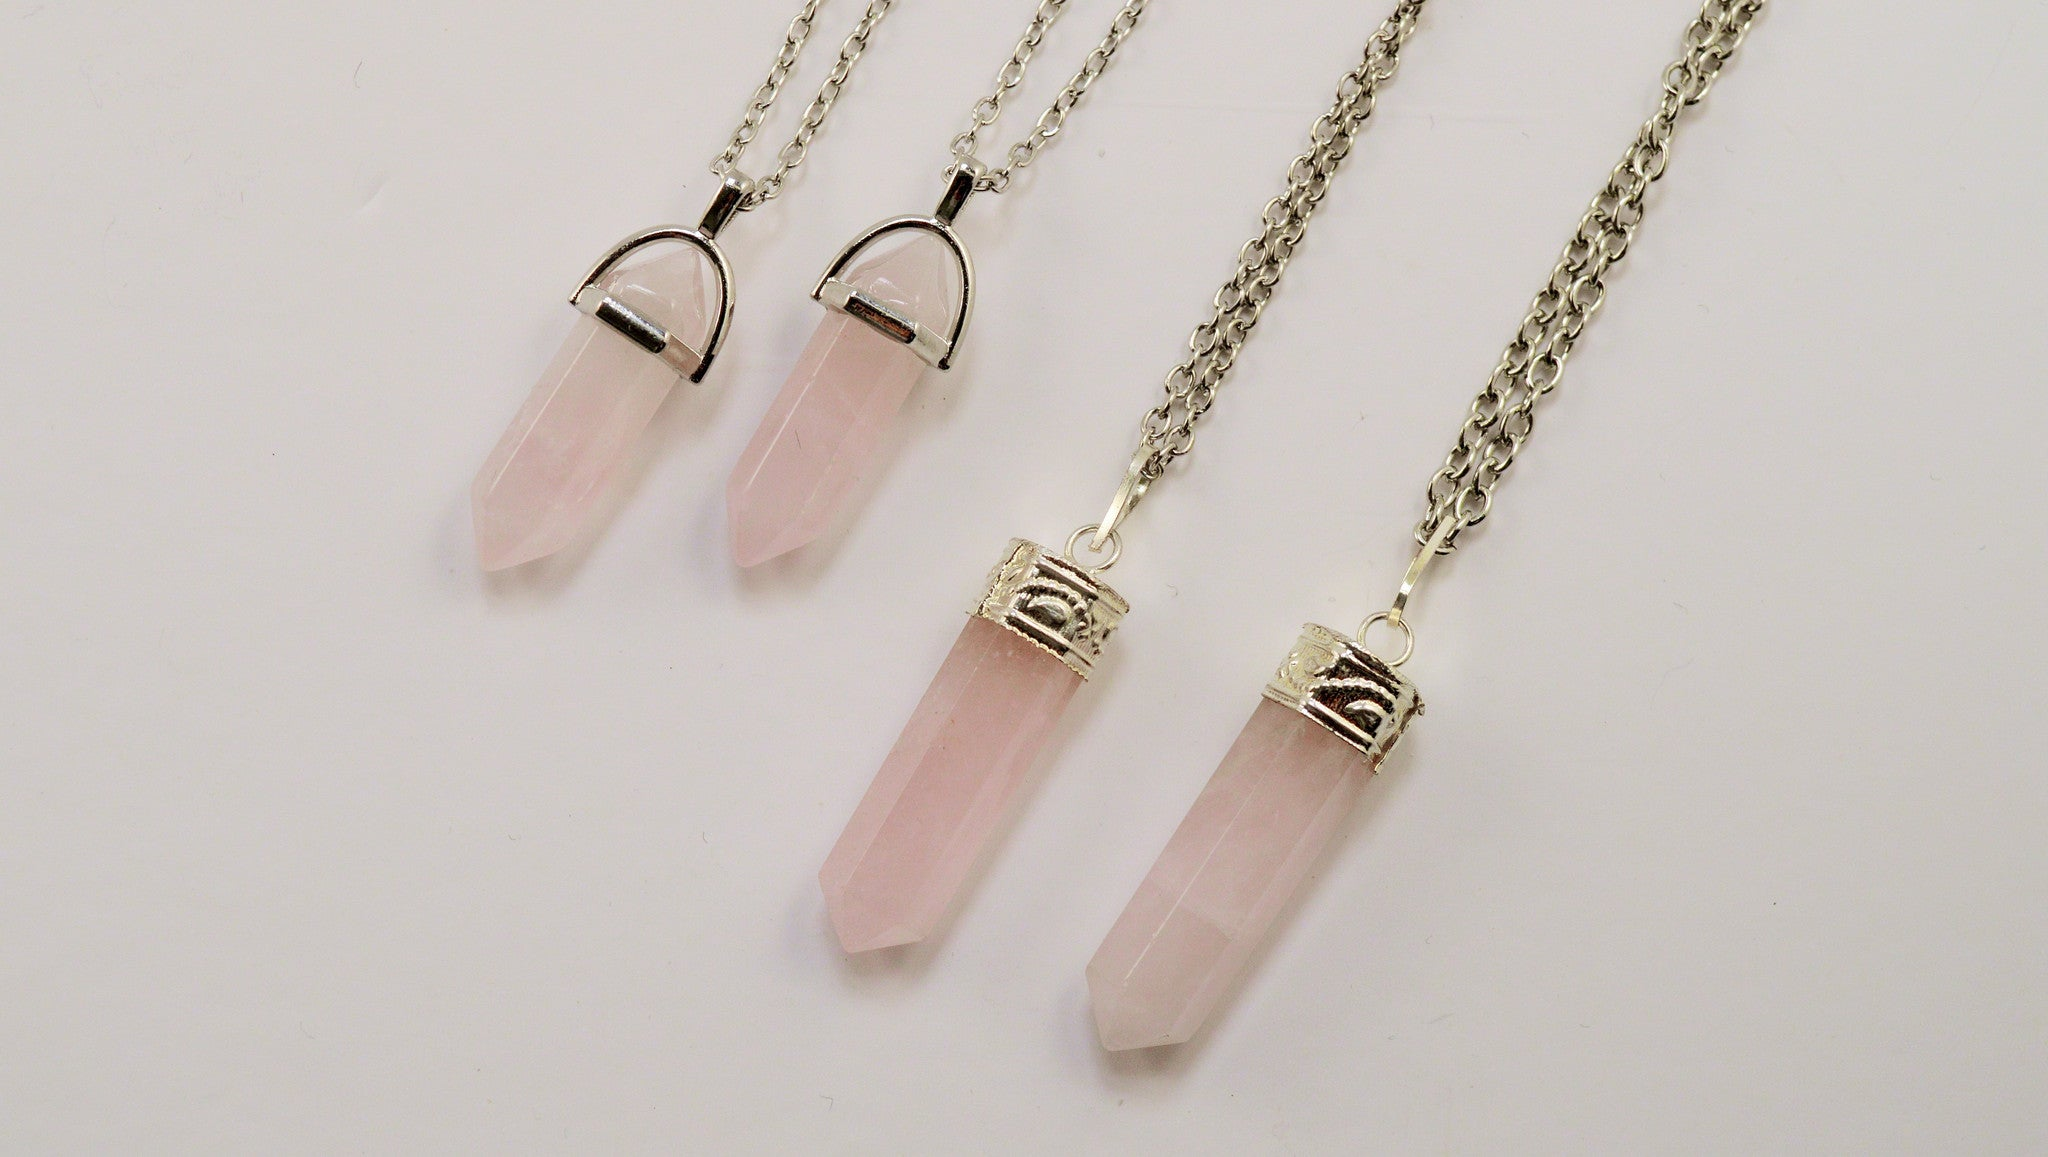 ROSE QUARTZ NECKLACES